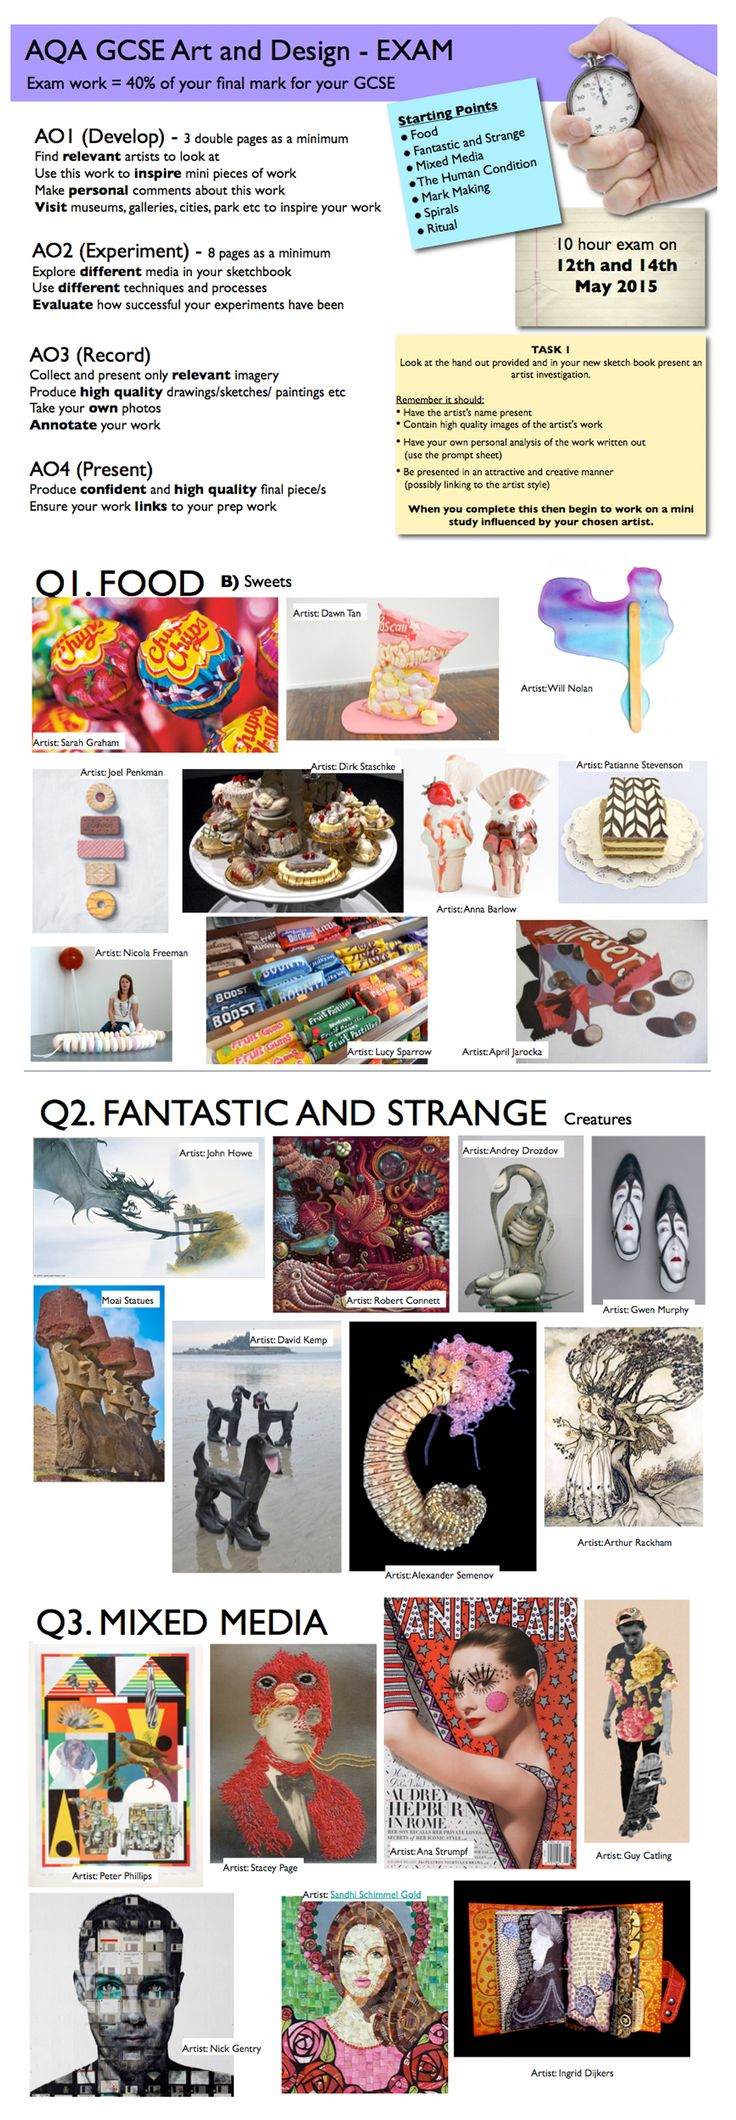 AQA Art and Design Exam Themes 2015 - PowerPoint (please click for the download)